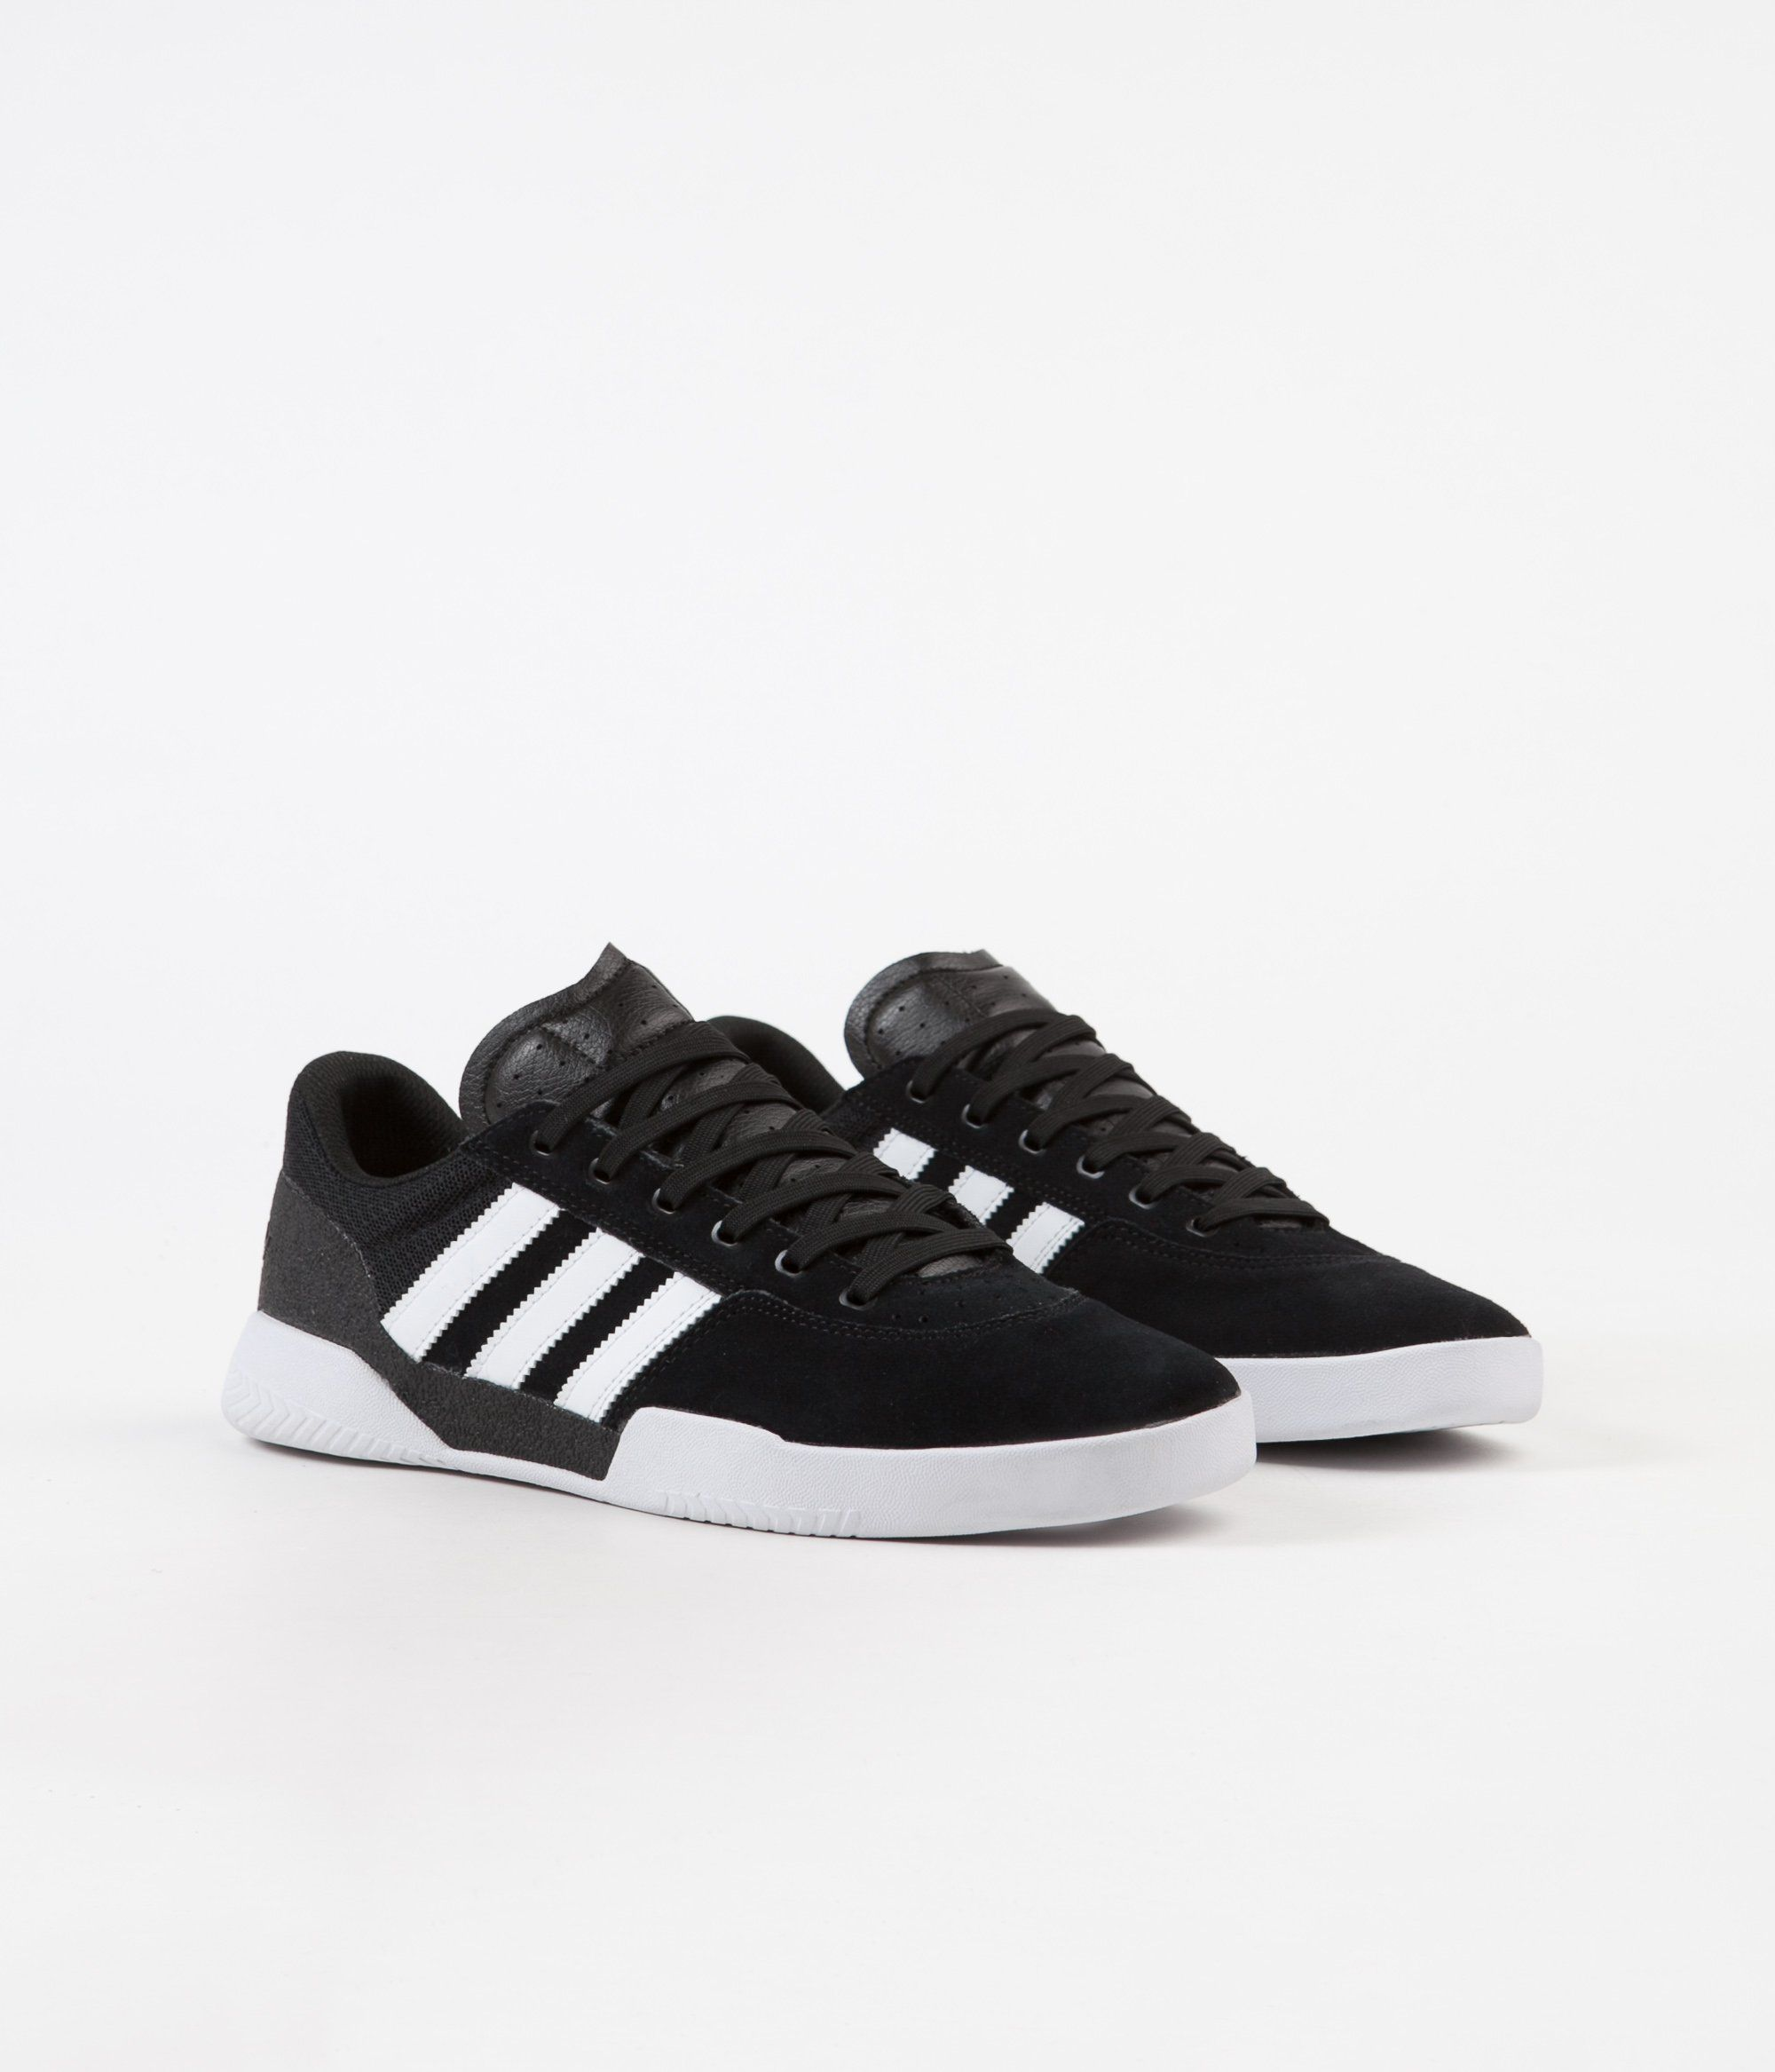 detailed look dba5c 87300 Adidas City Cup Shoes - Core Black  FTW White  FTW White